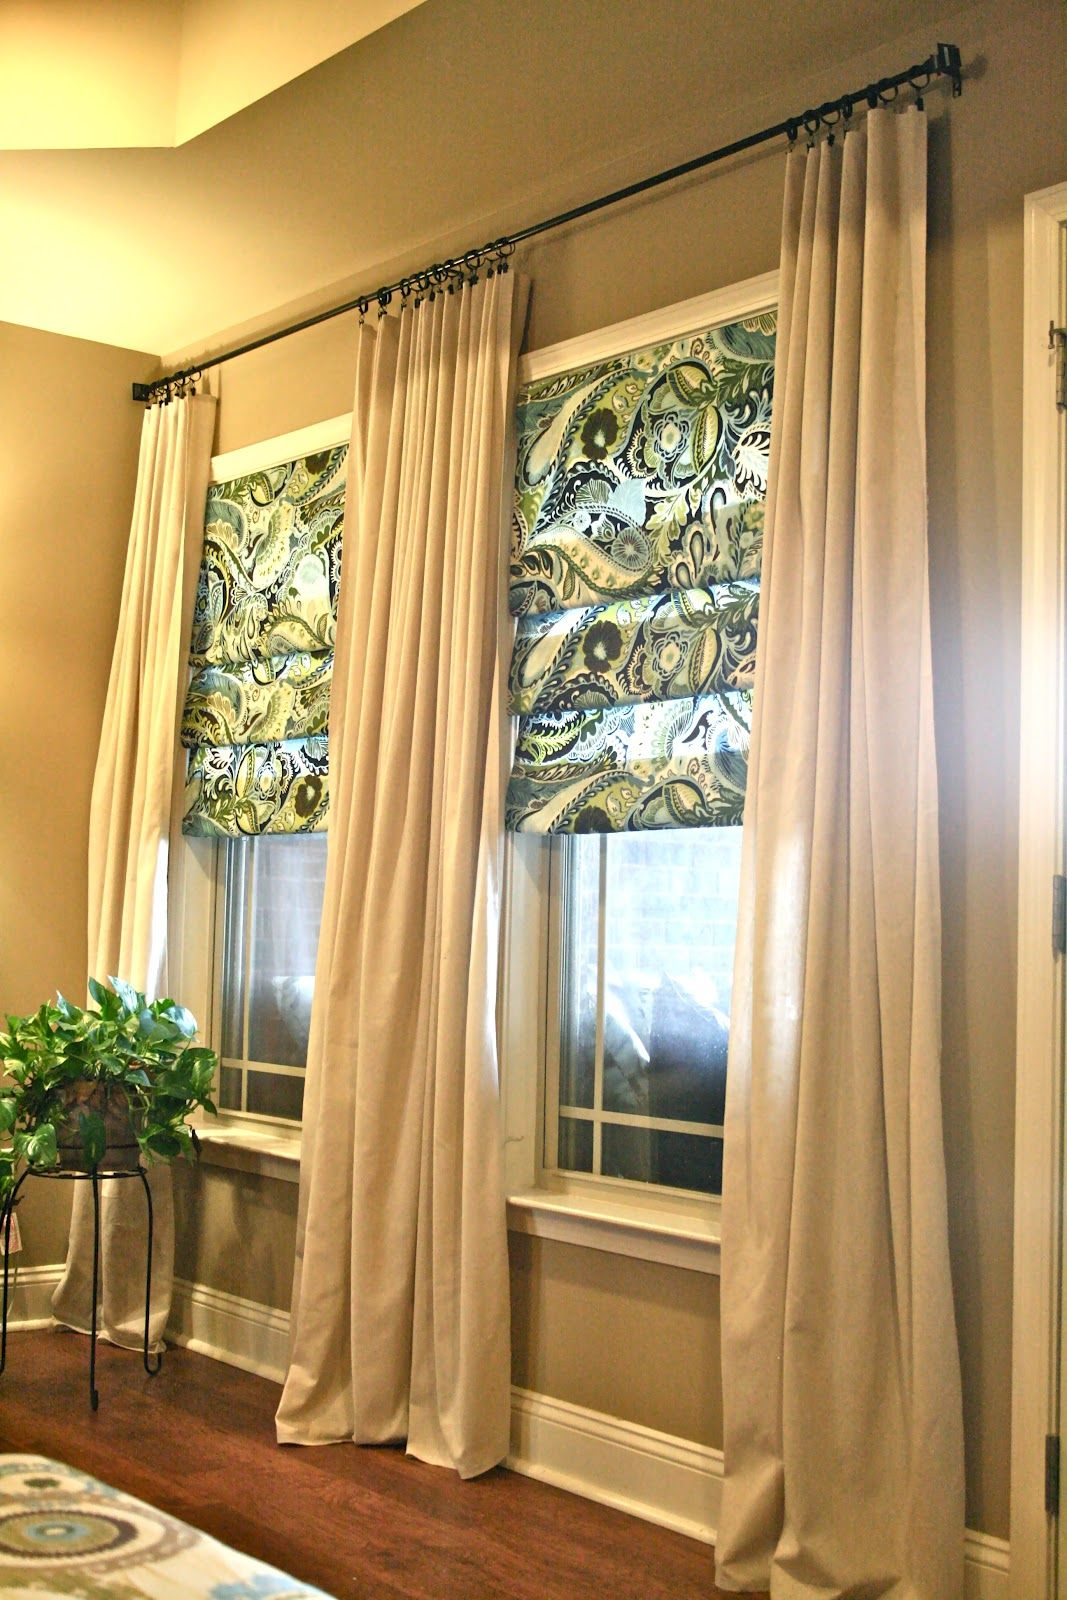 Curtain For Double Window Foolproof Advice For Home Improvement Projects Diy Home Decor